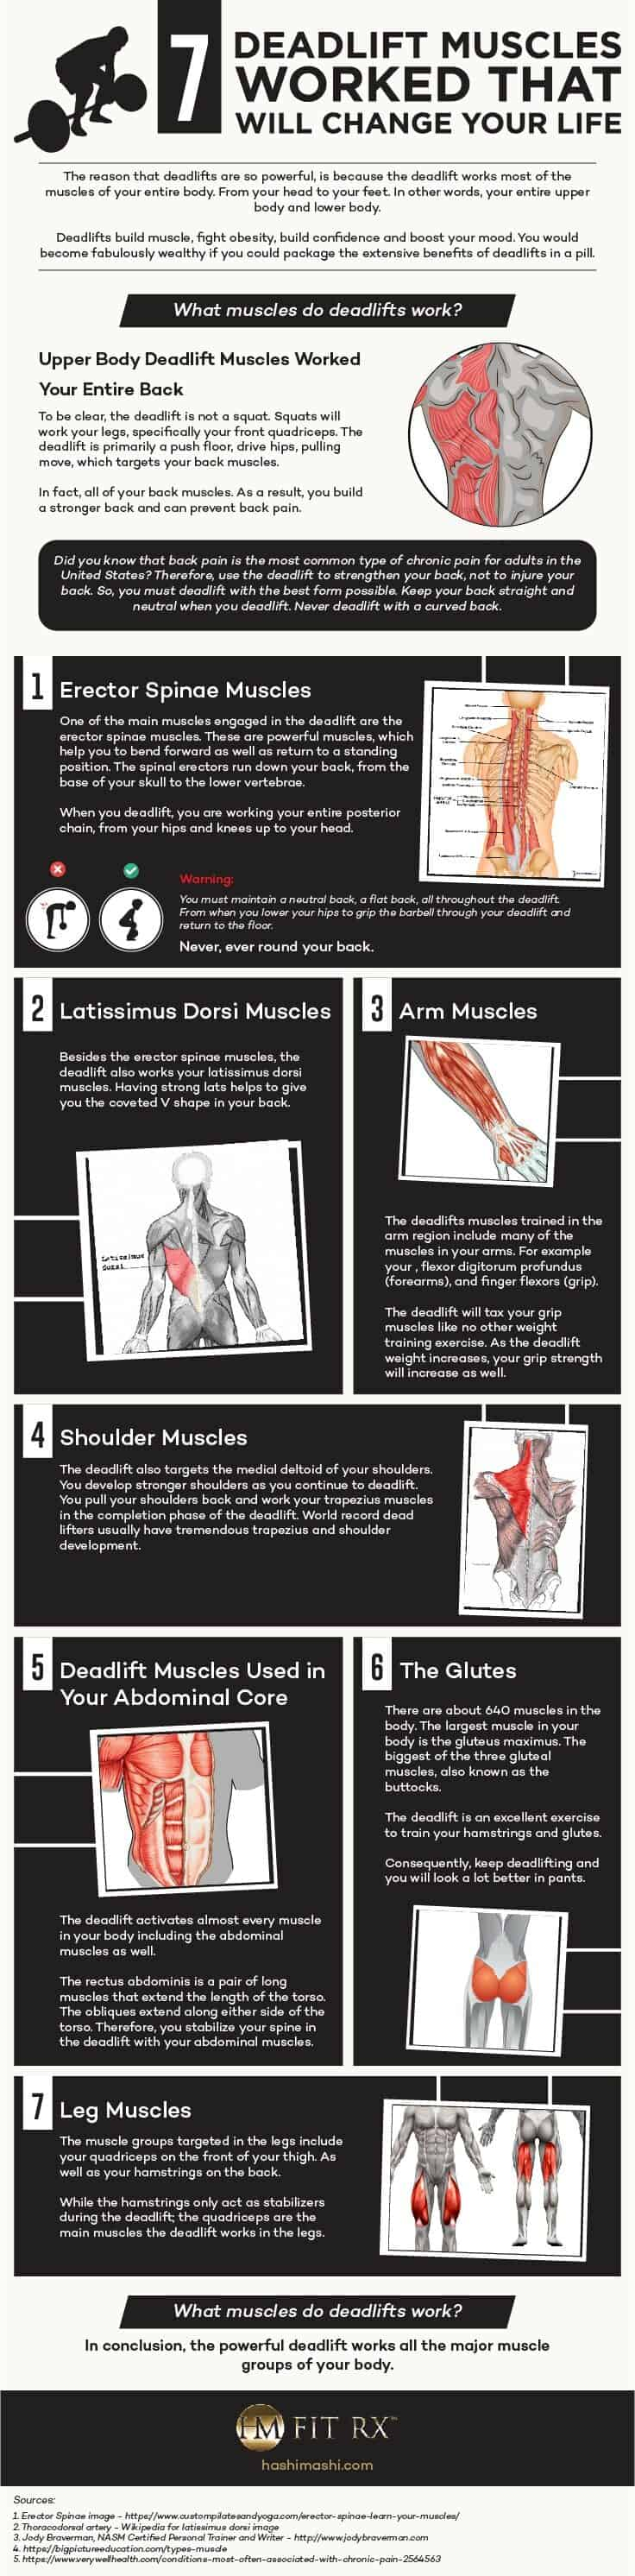 what muscle groups do deadlifts work credit https://hashimashi.com